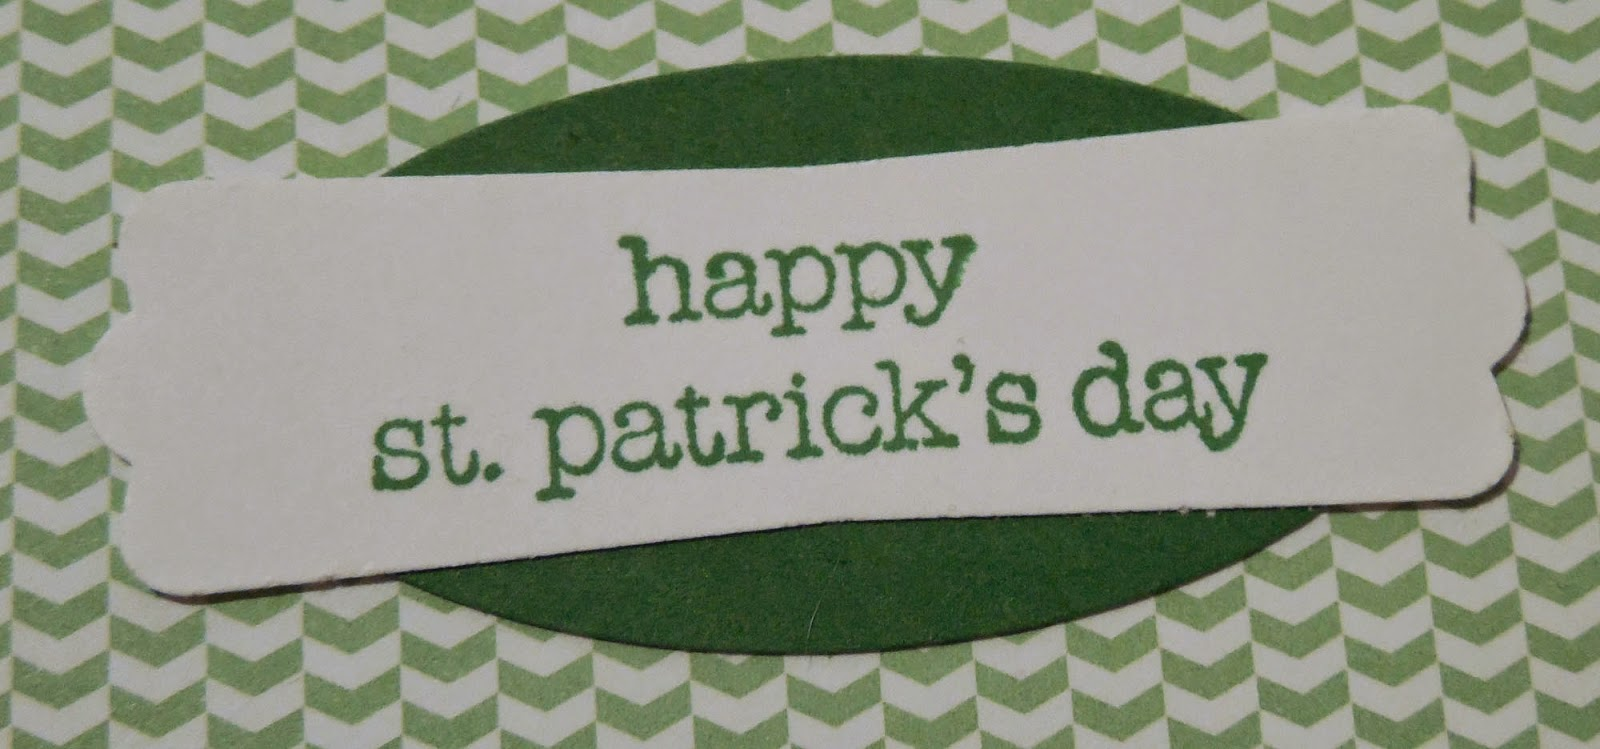 The sentiment for the St. Patrick's Day Card